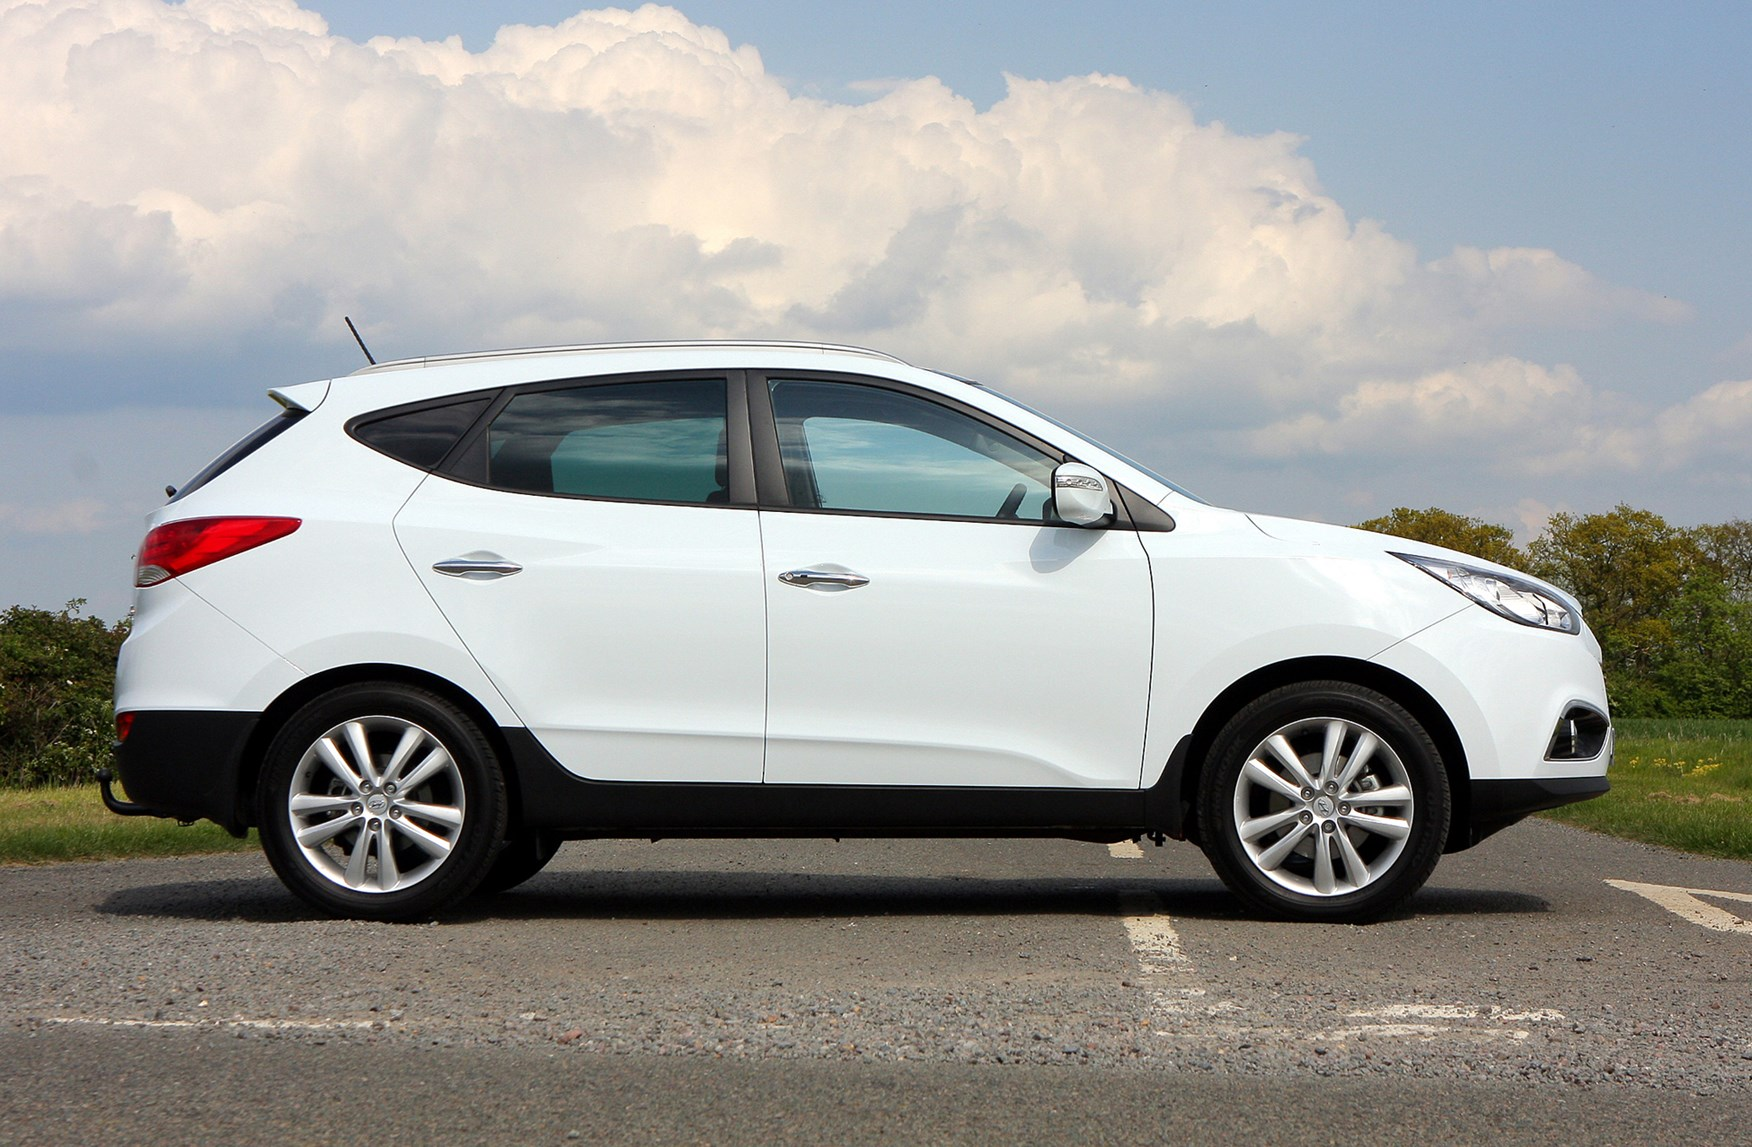 Hyundai ix35 Estate (2010 - 2015) Photos | Parkers